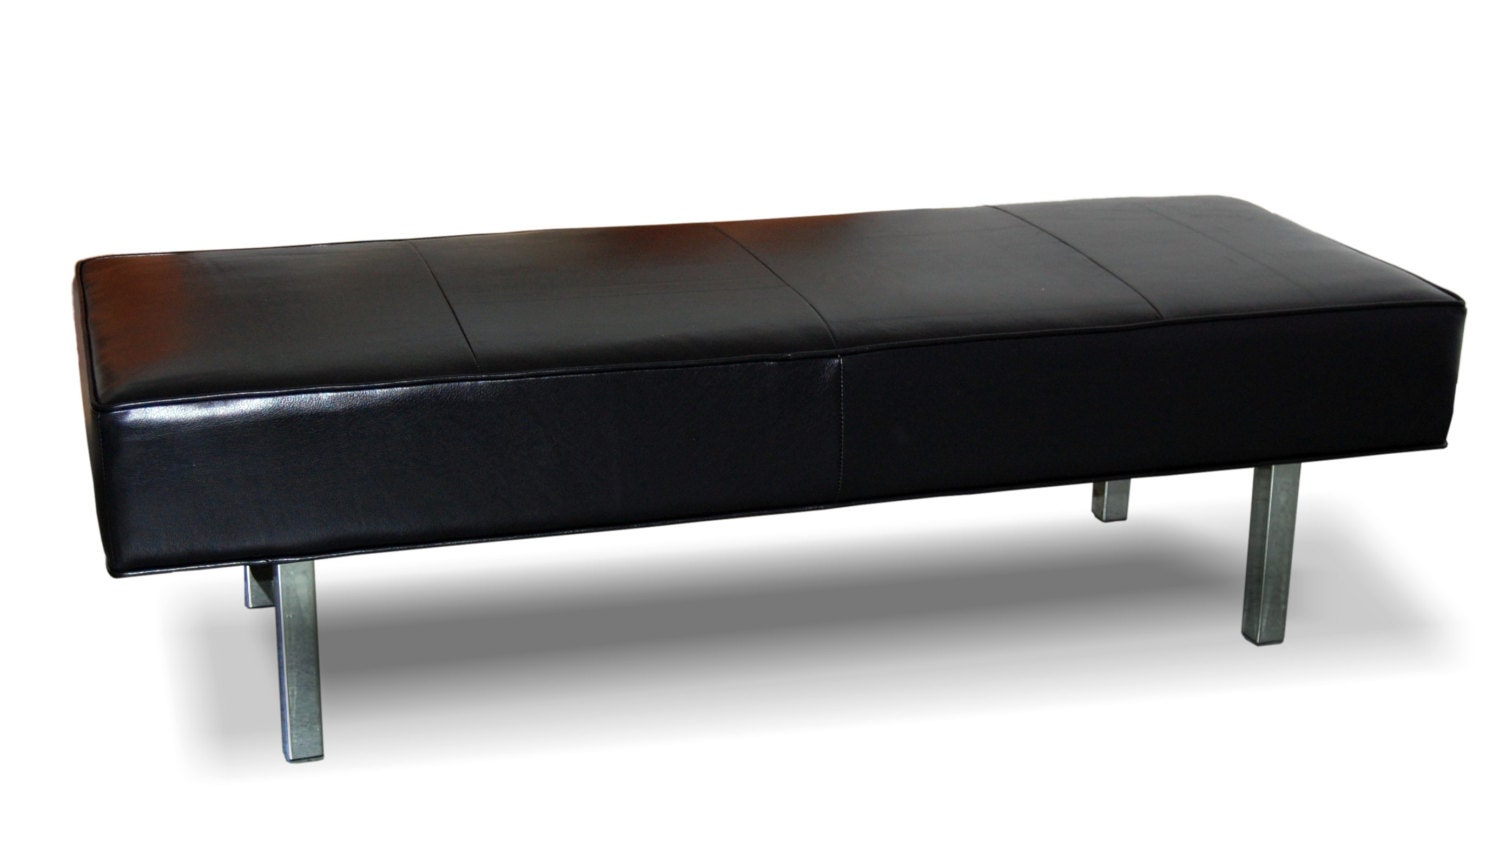 Ultra Contemporary Black Genuine Leather Bench Ottoman With Chrome Legs